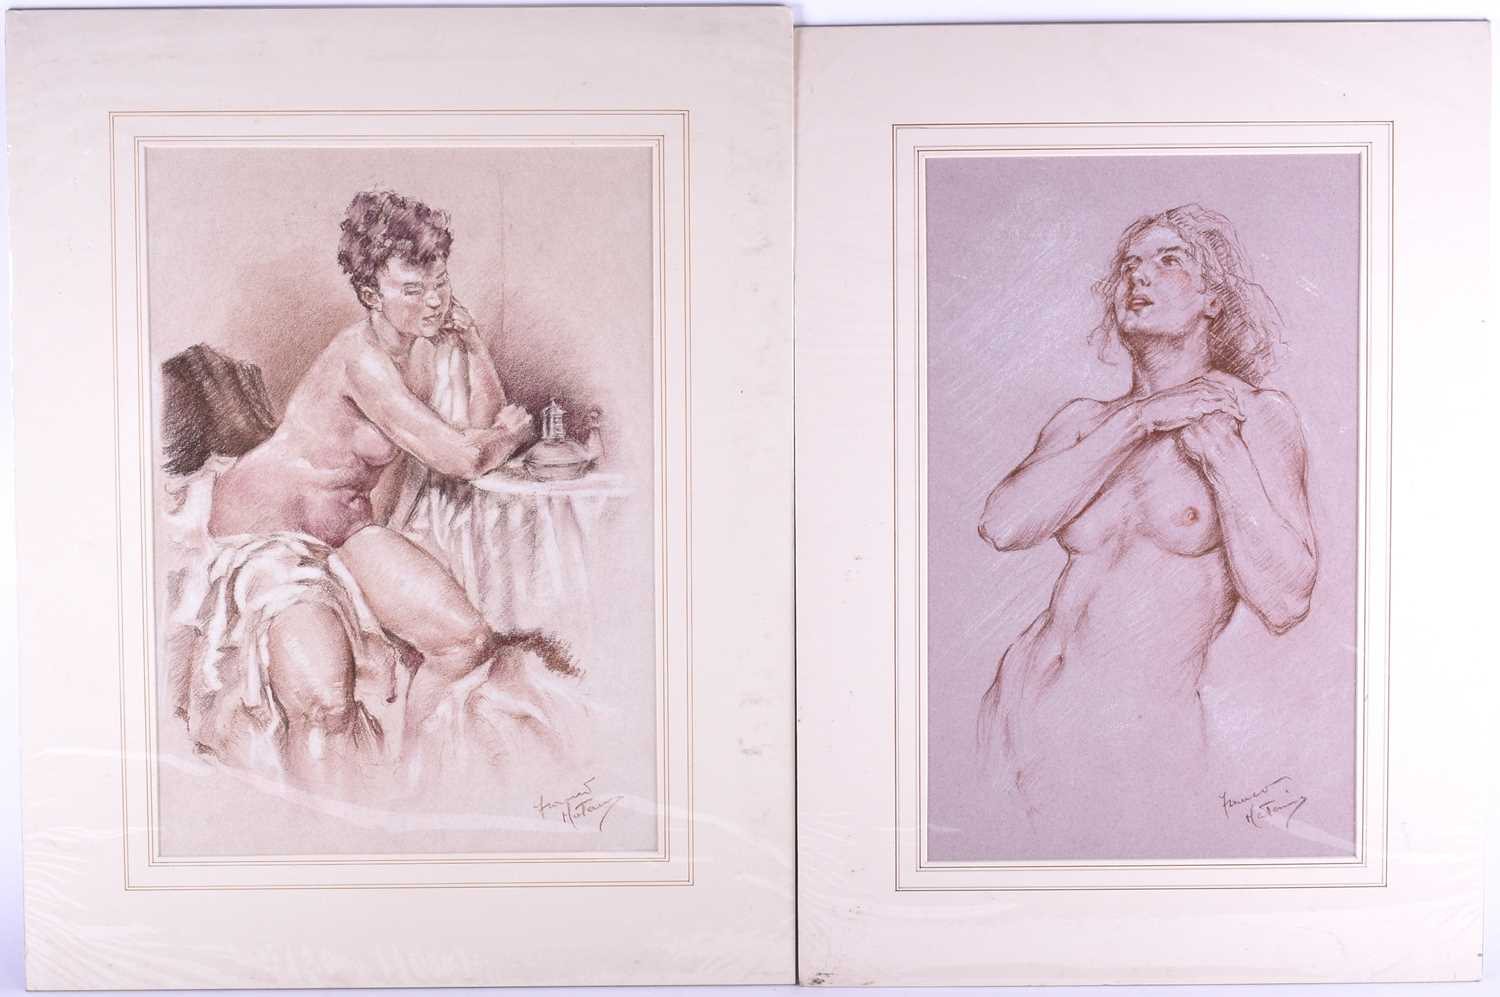 Lot 35 - Franco Matania (1922-2006) Italian/British, a group of eight pastel sketches and portraits of nude